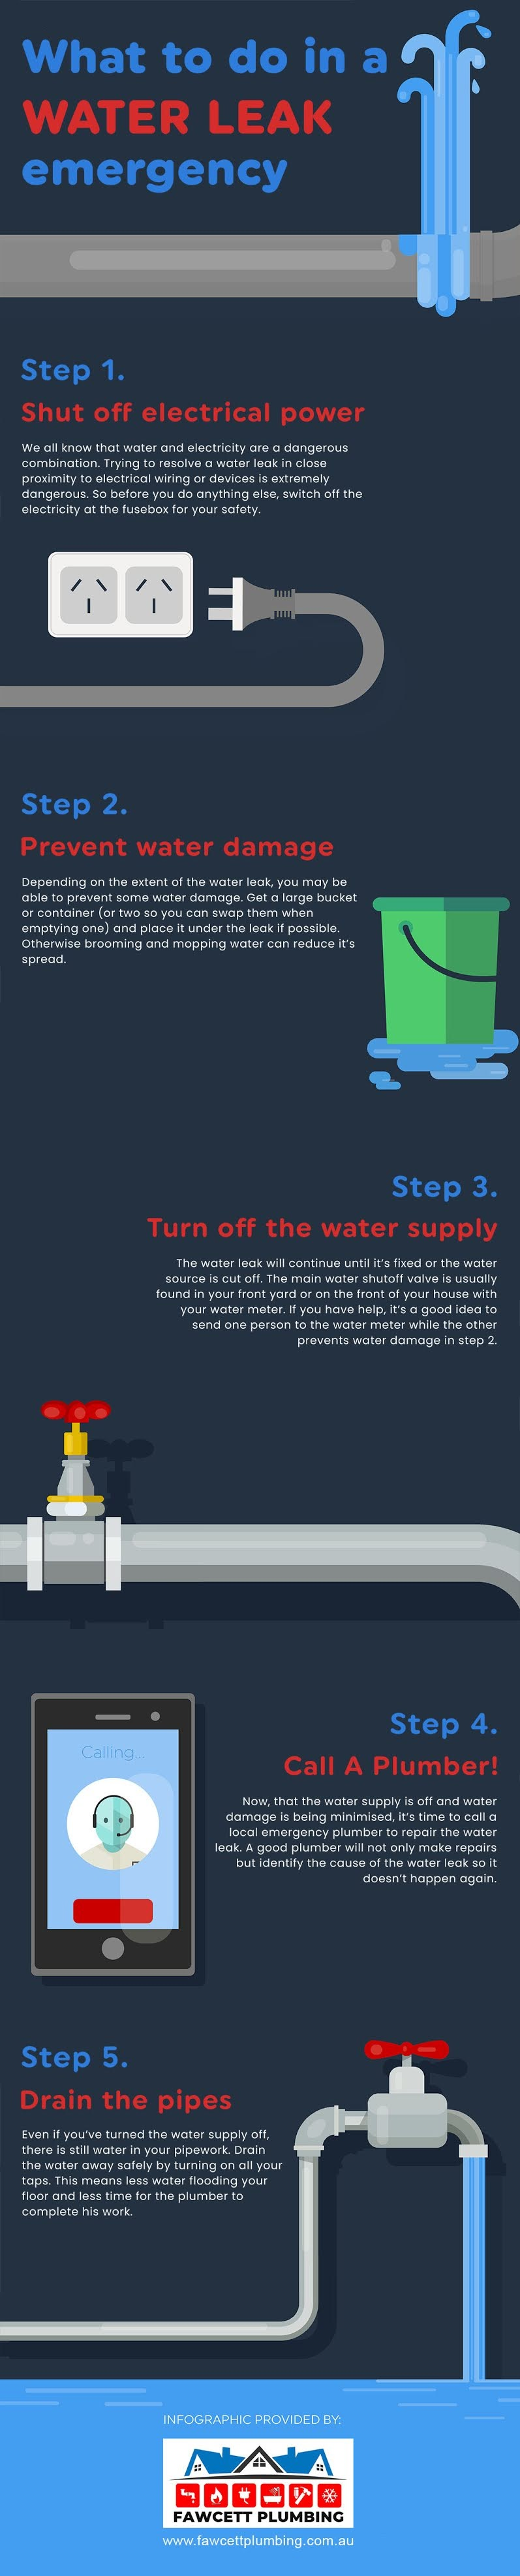 What To Do In A Water Leak Emergency? # Infographic